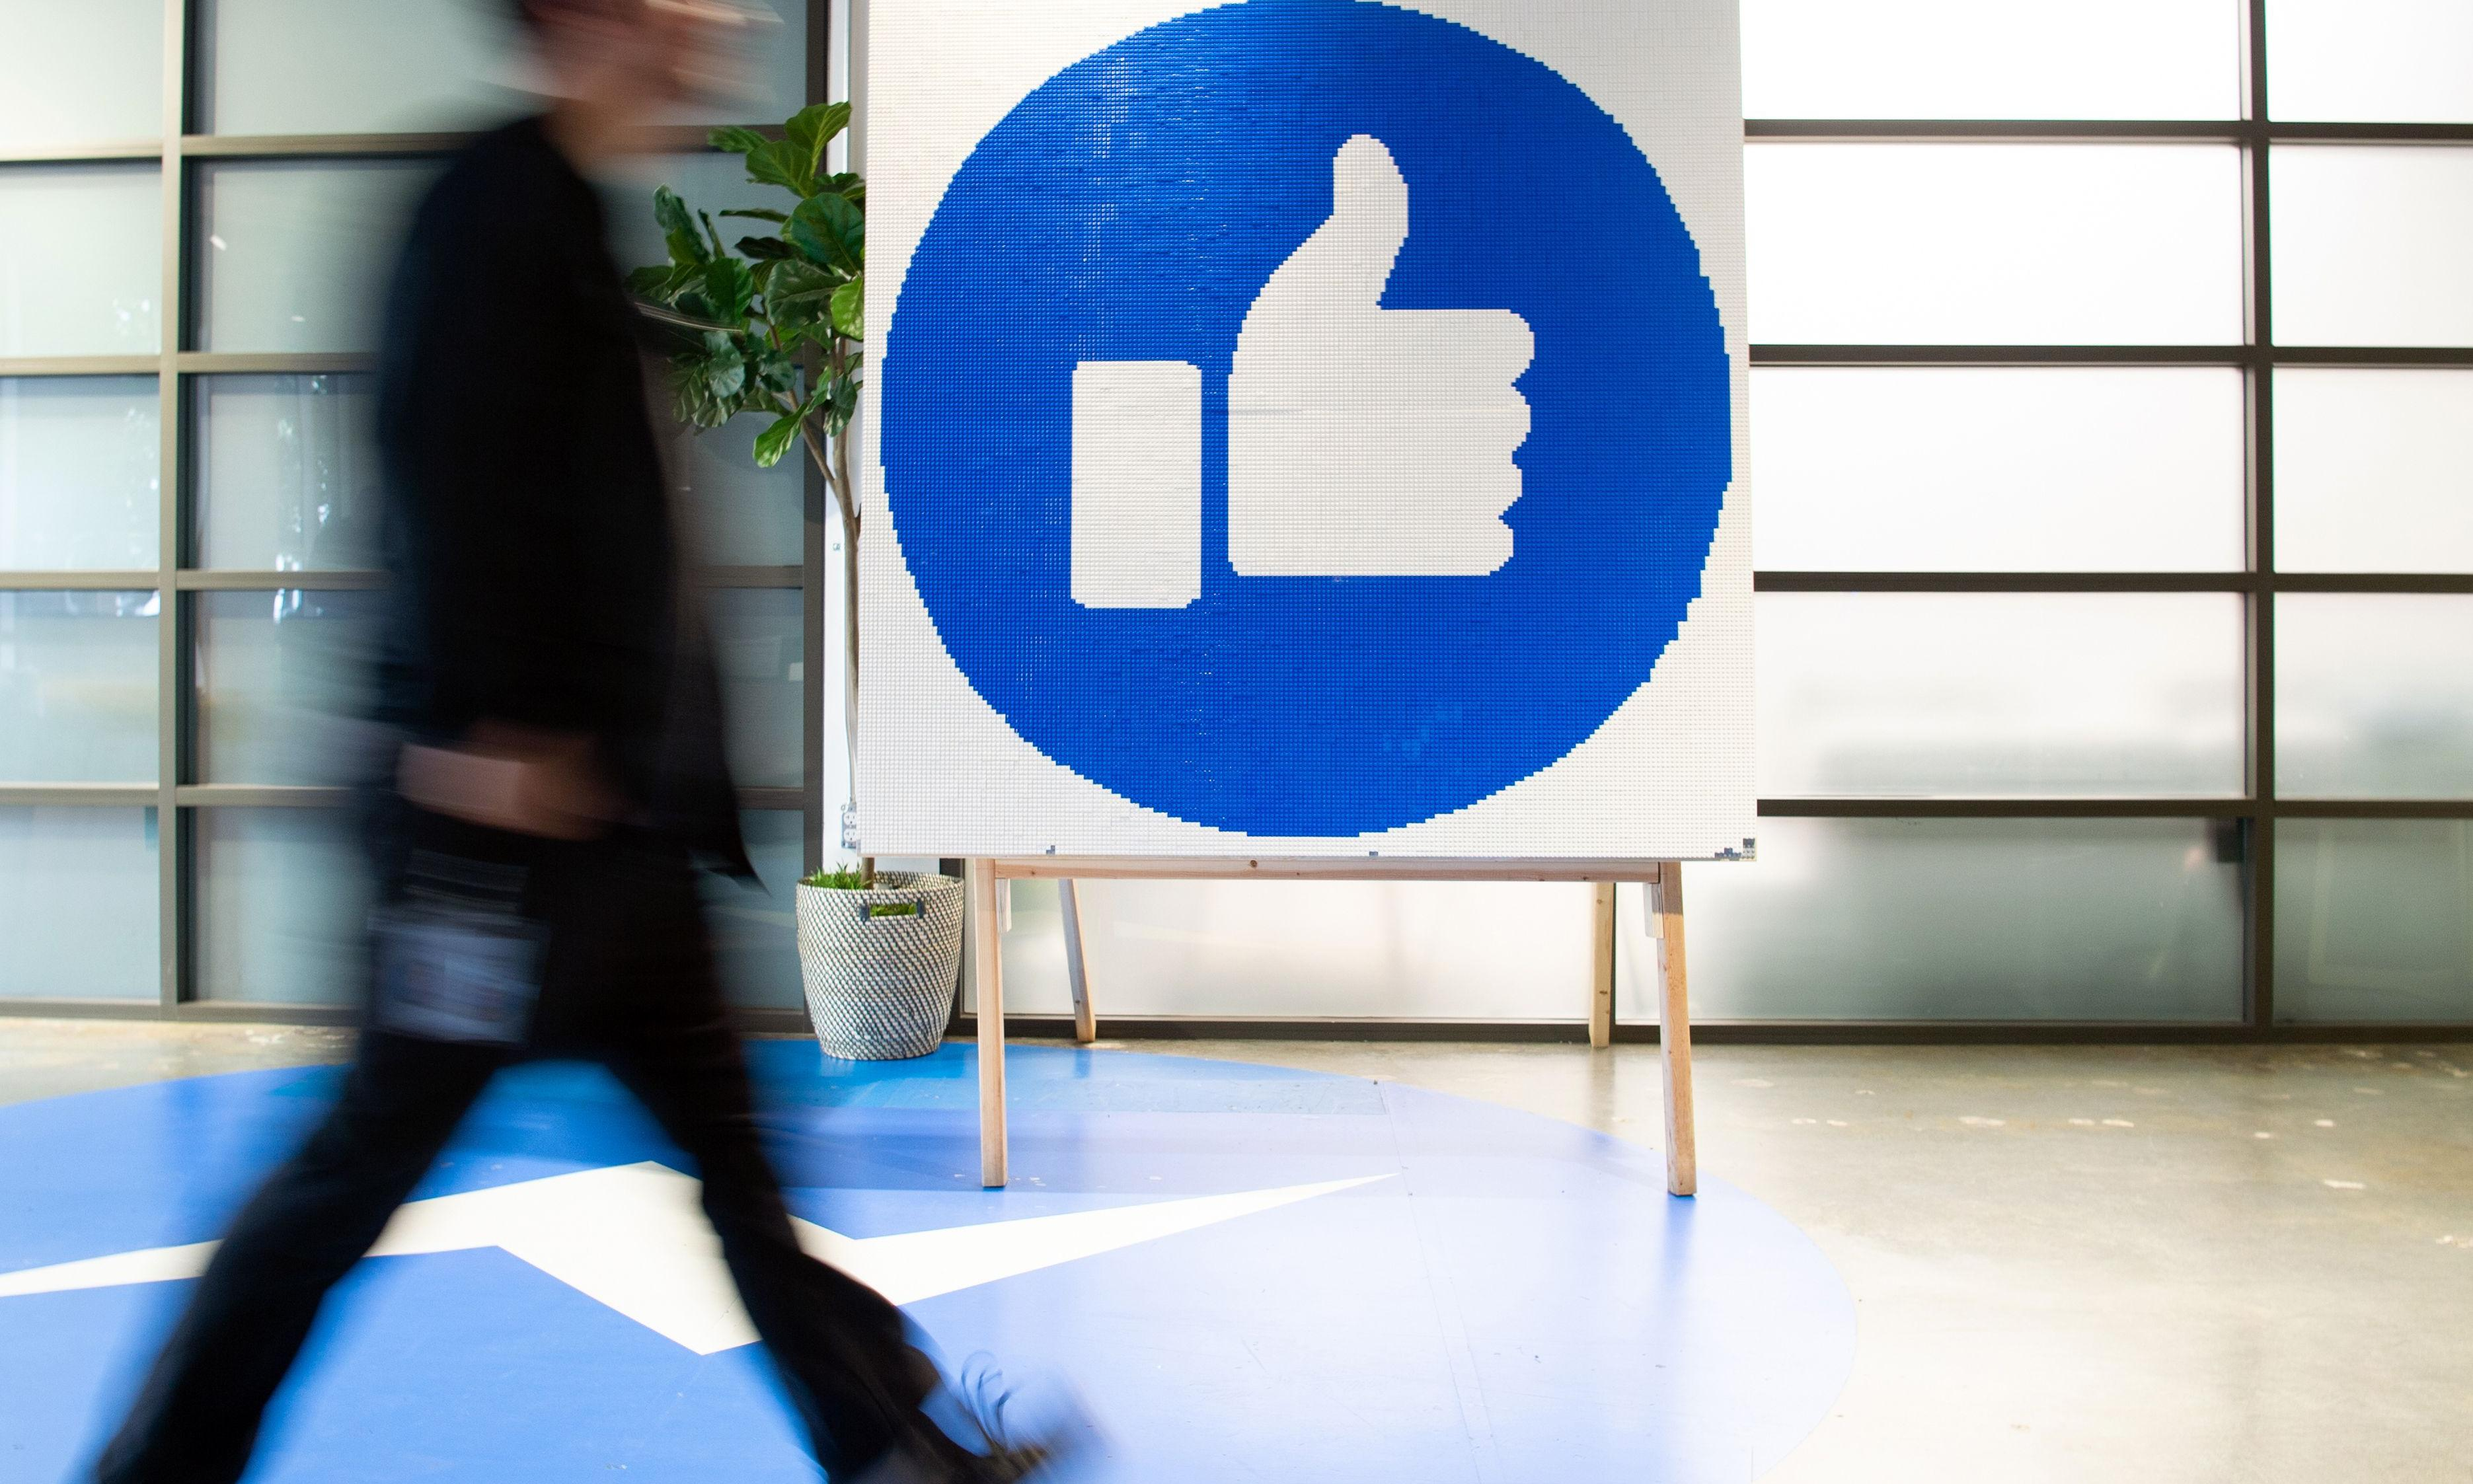 Australia's election watchdog lacks power to investigate who is paying for Facebook political ads